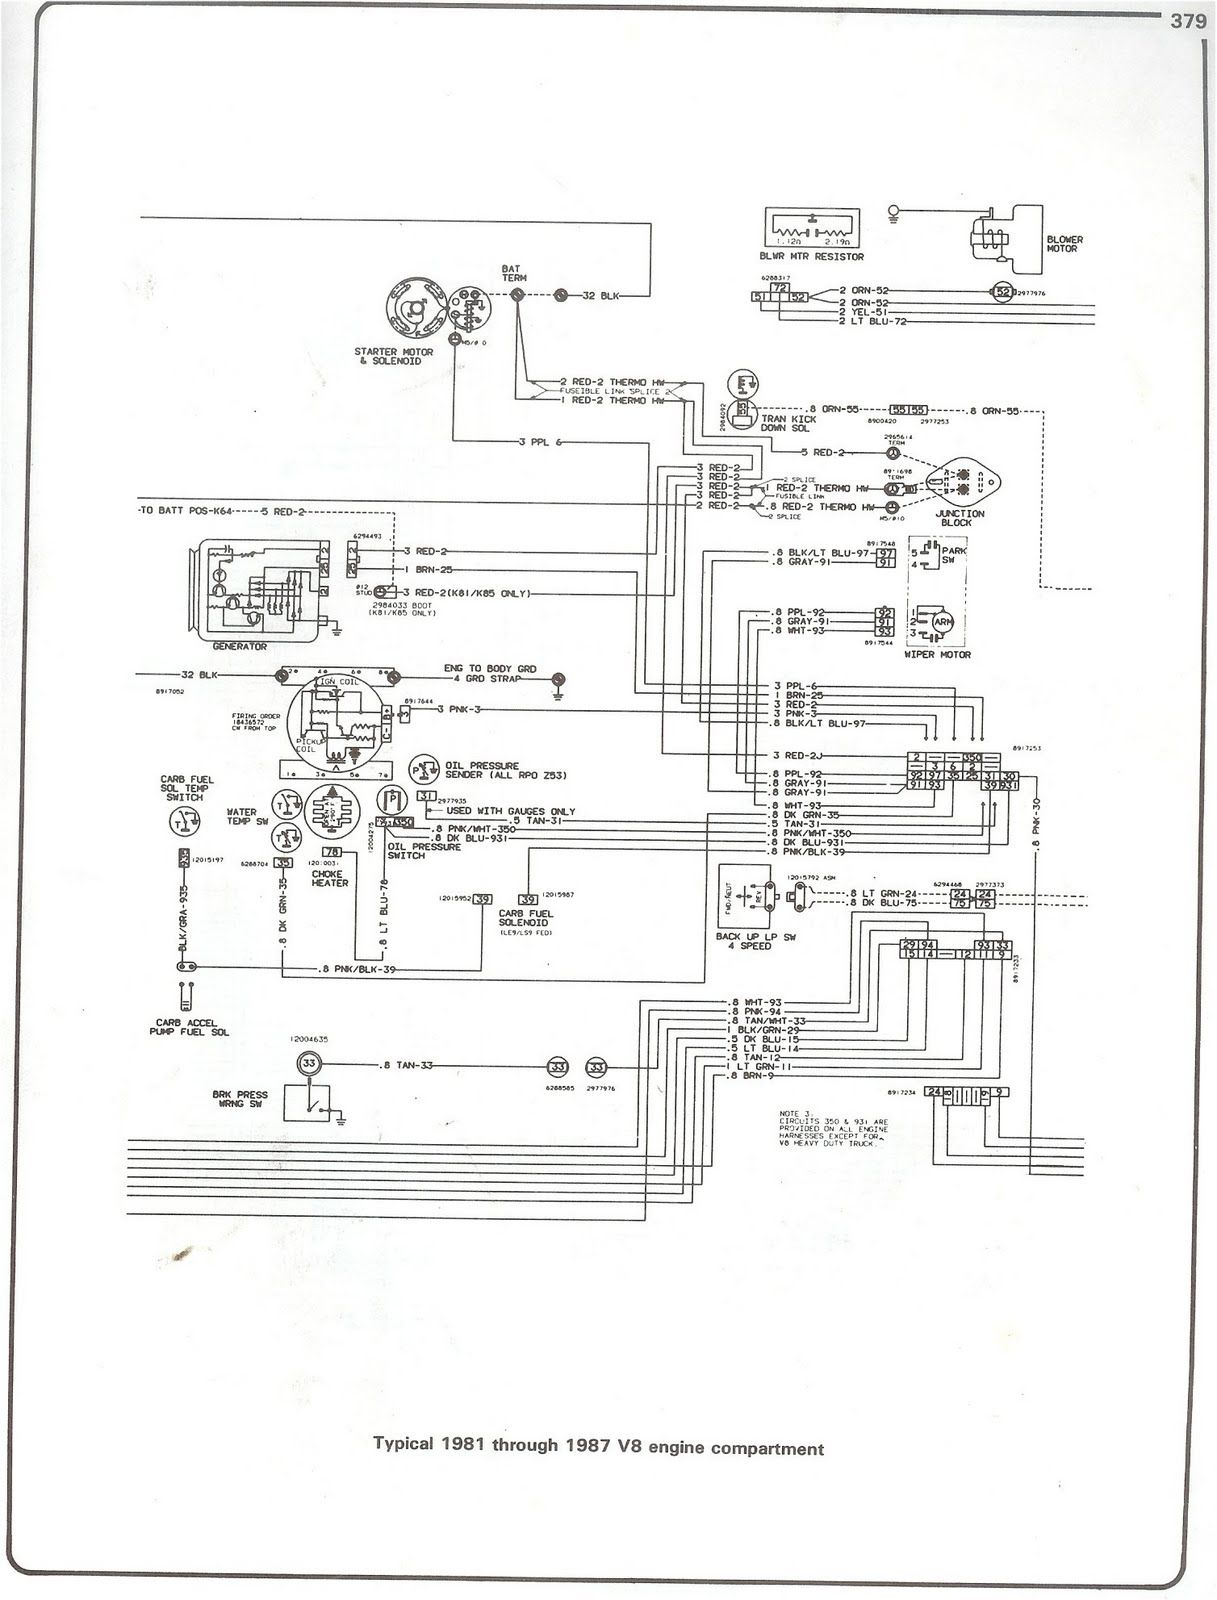 This is engine partment wiring diagram for 1981 trough